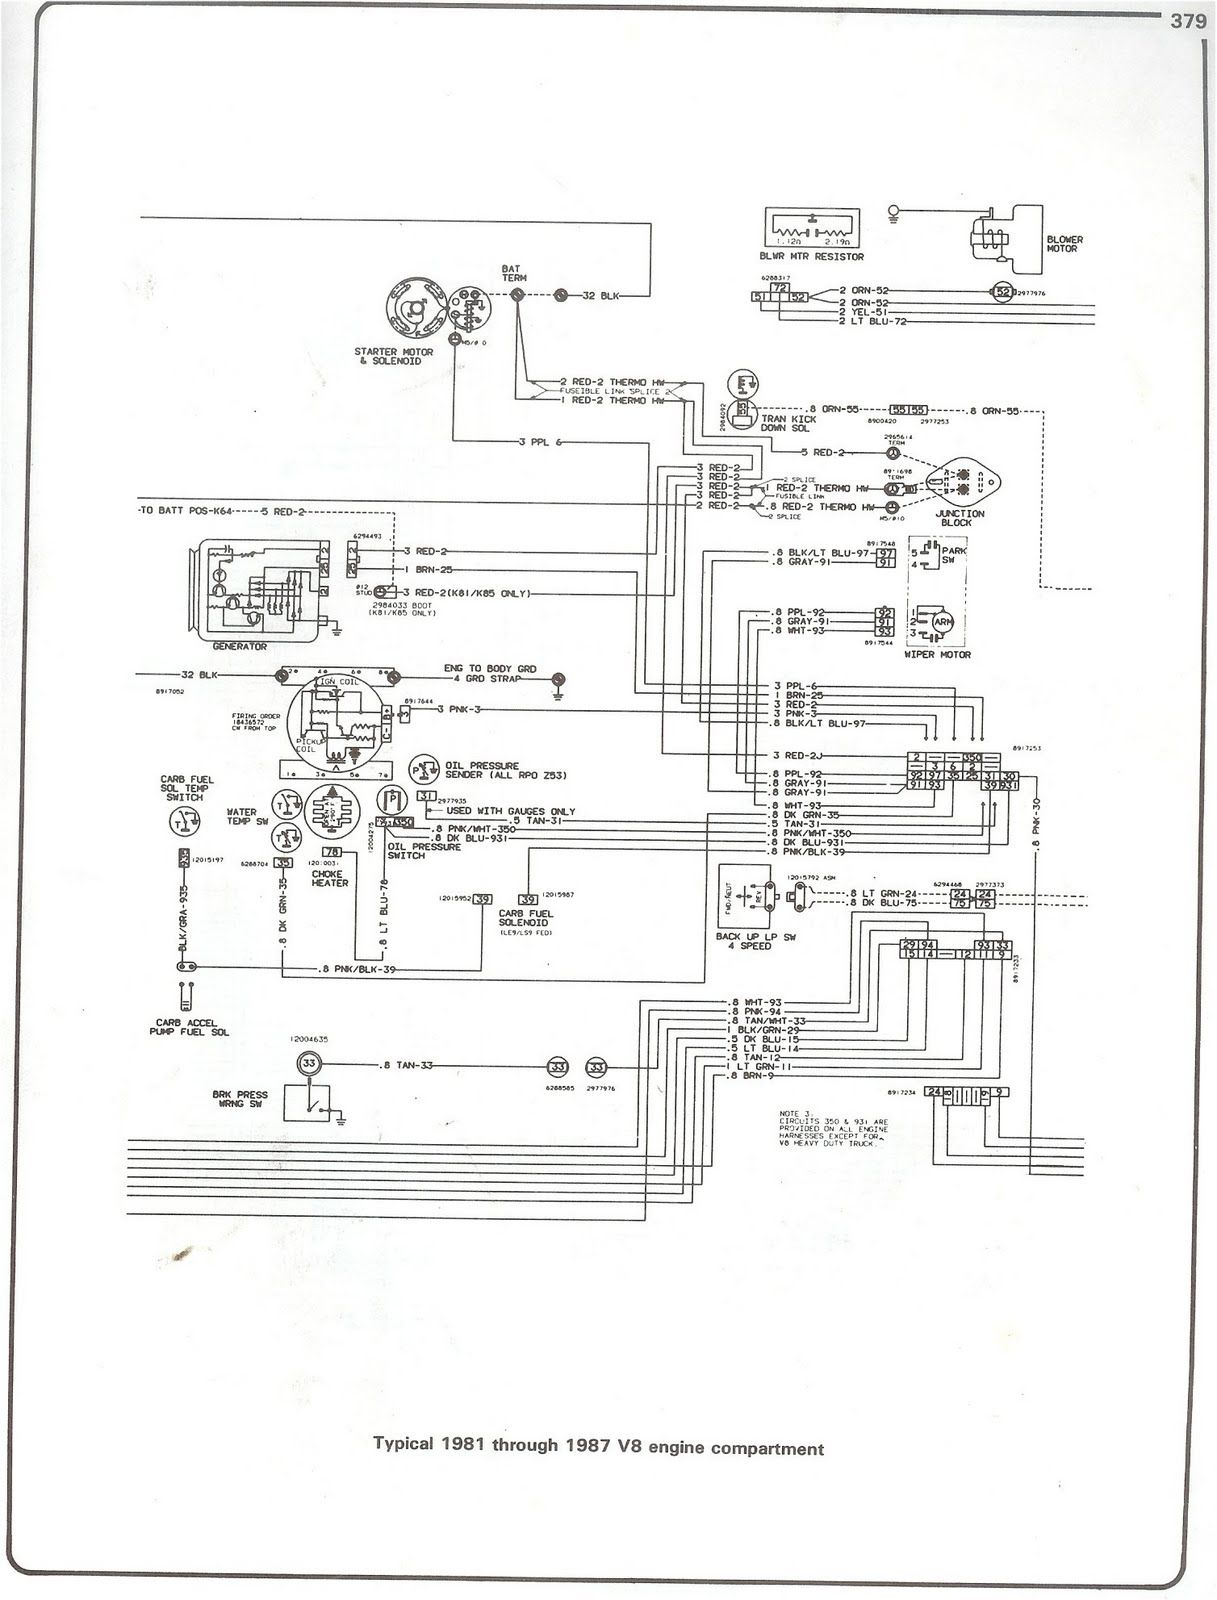 This is engine partment wiring diagram for 1981 trough